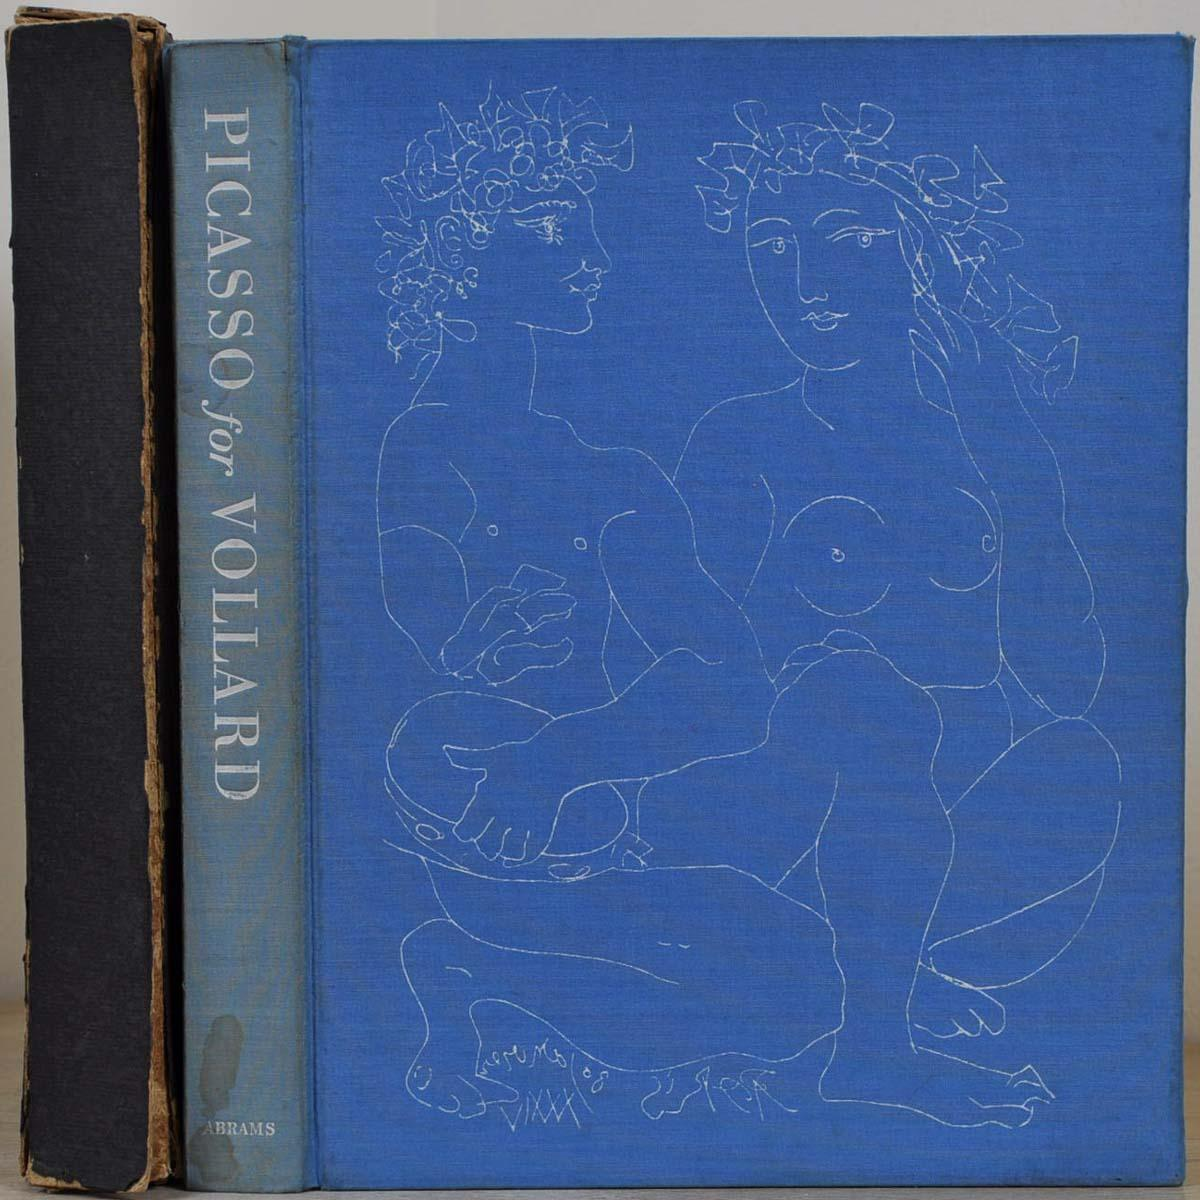 PICASSO FOR VOLLARD. Picasso, Pablo; Hans Bollinger Hardcover